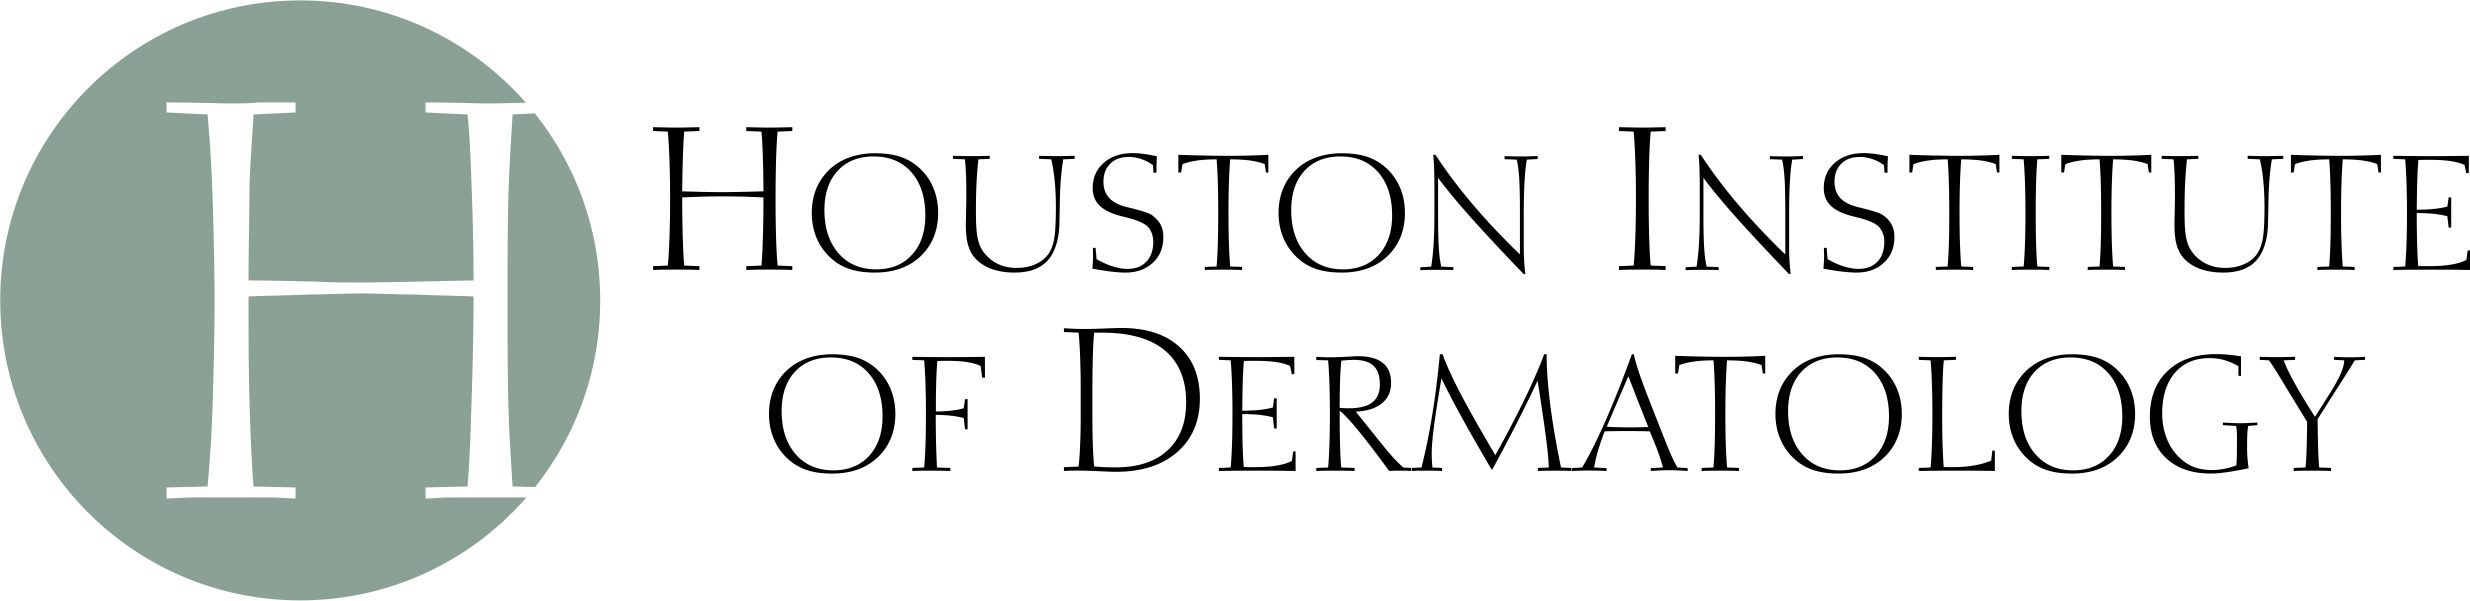 Houston Institute of Dermatology